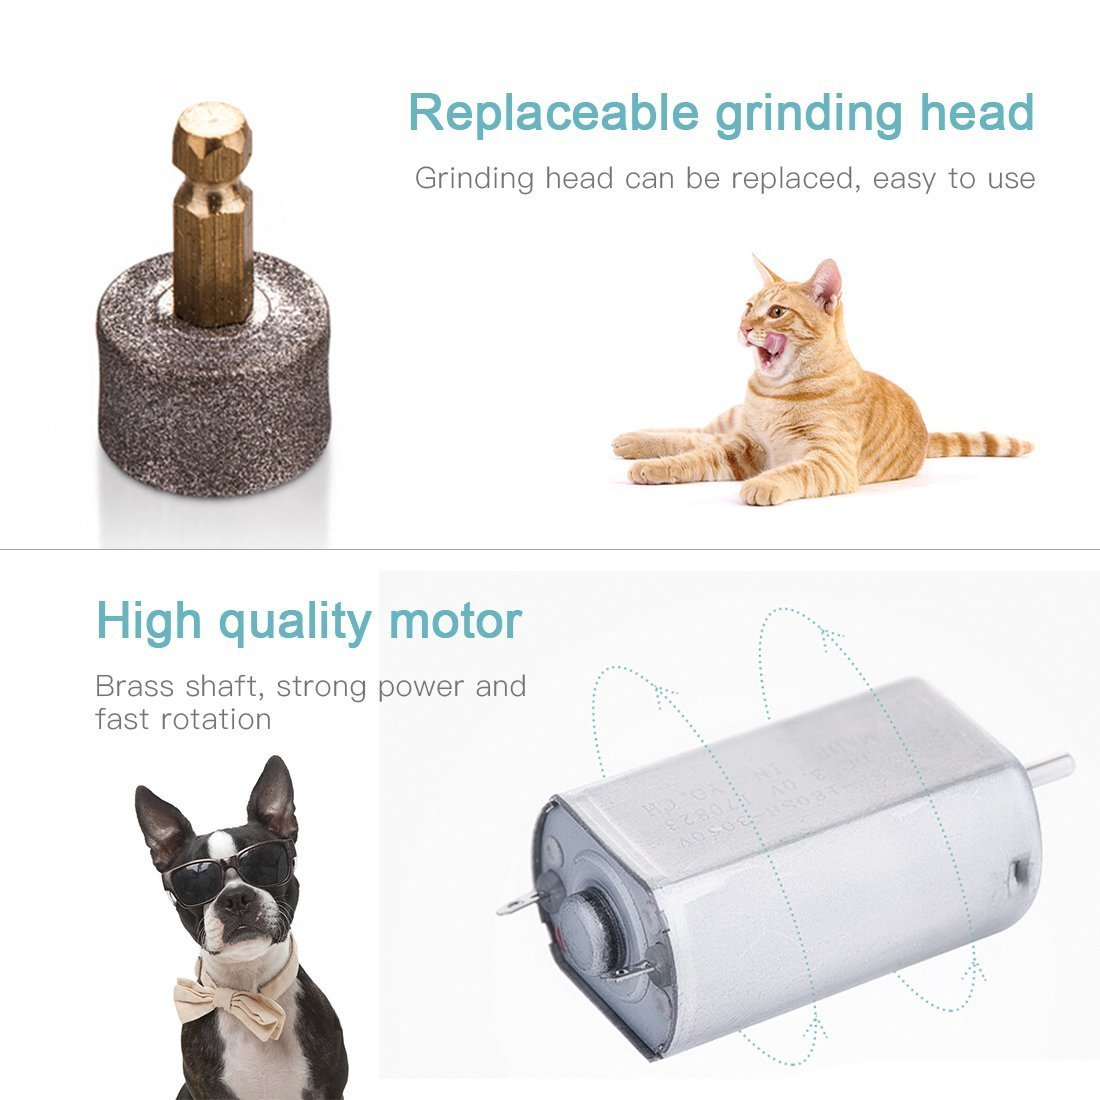 DIGDAN Dog Nail Grinder, Electric Pet Nail Grinder with USB Fast Charging for Gentle Painless Paws Grooming, Portable Low Noise Nail Clippers for Dogs, Cats and Other Animal Paws by DIGDAN (Image #6)